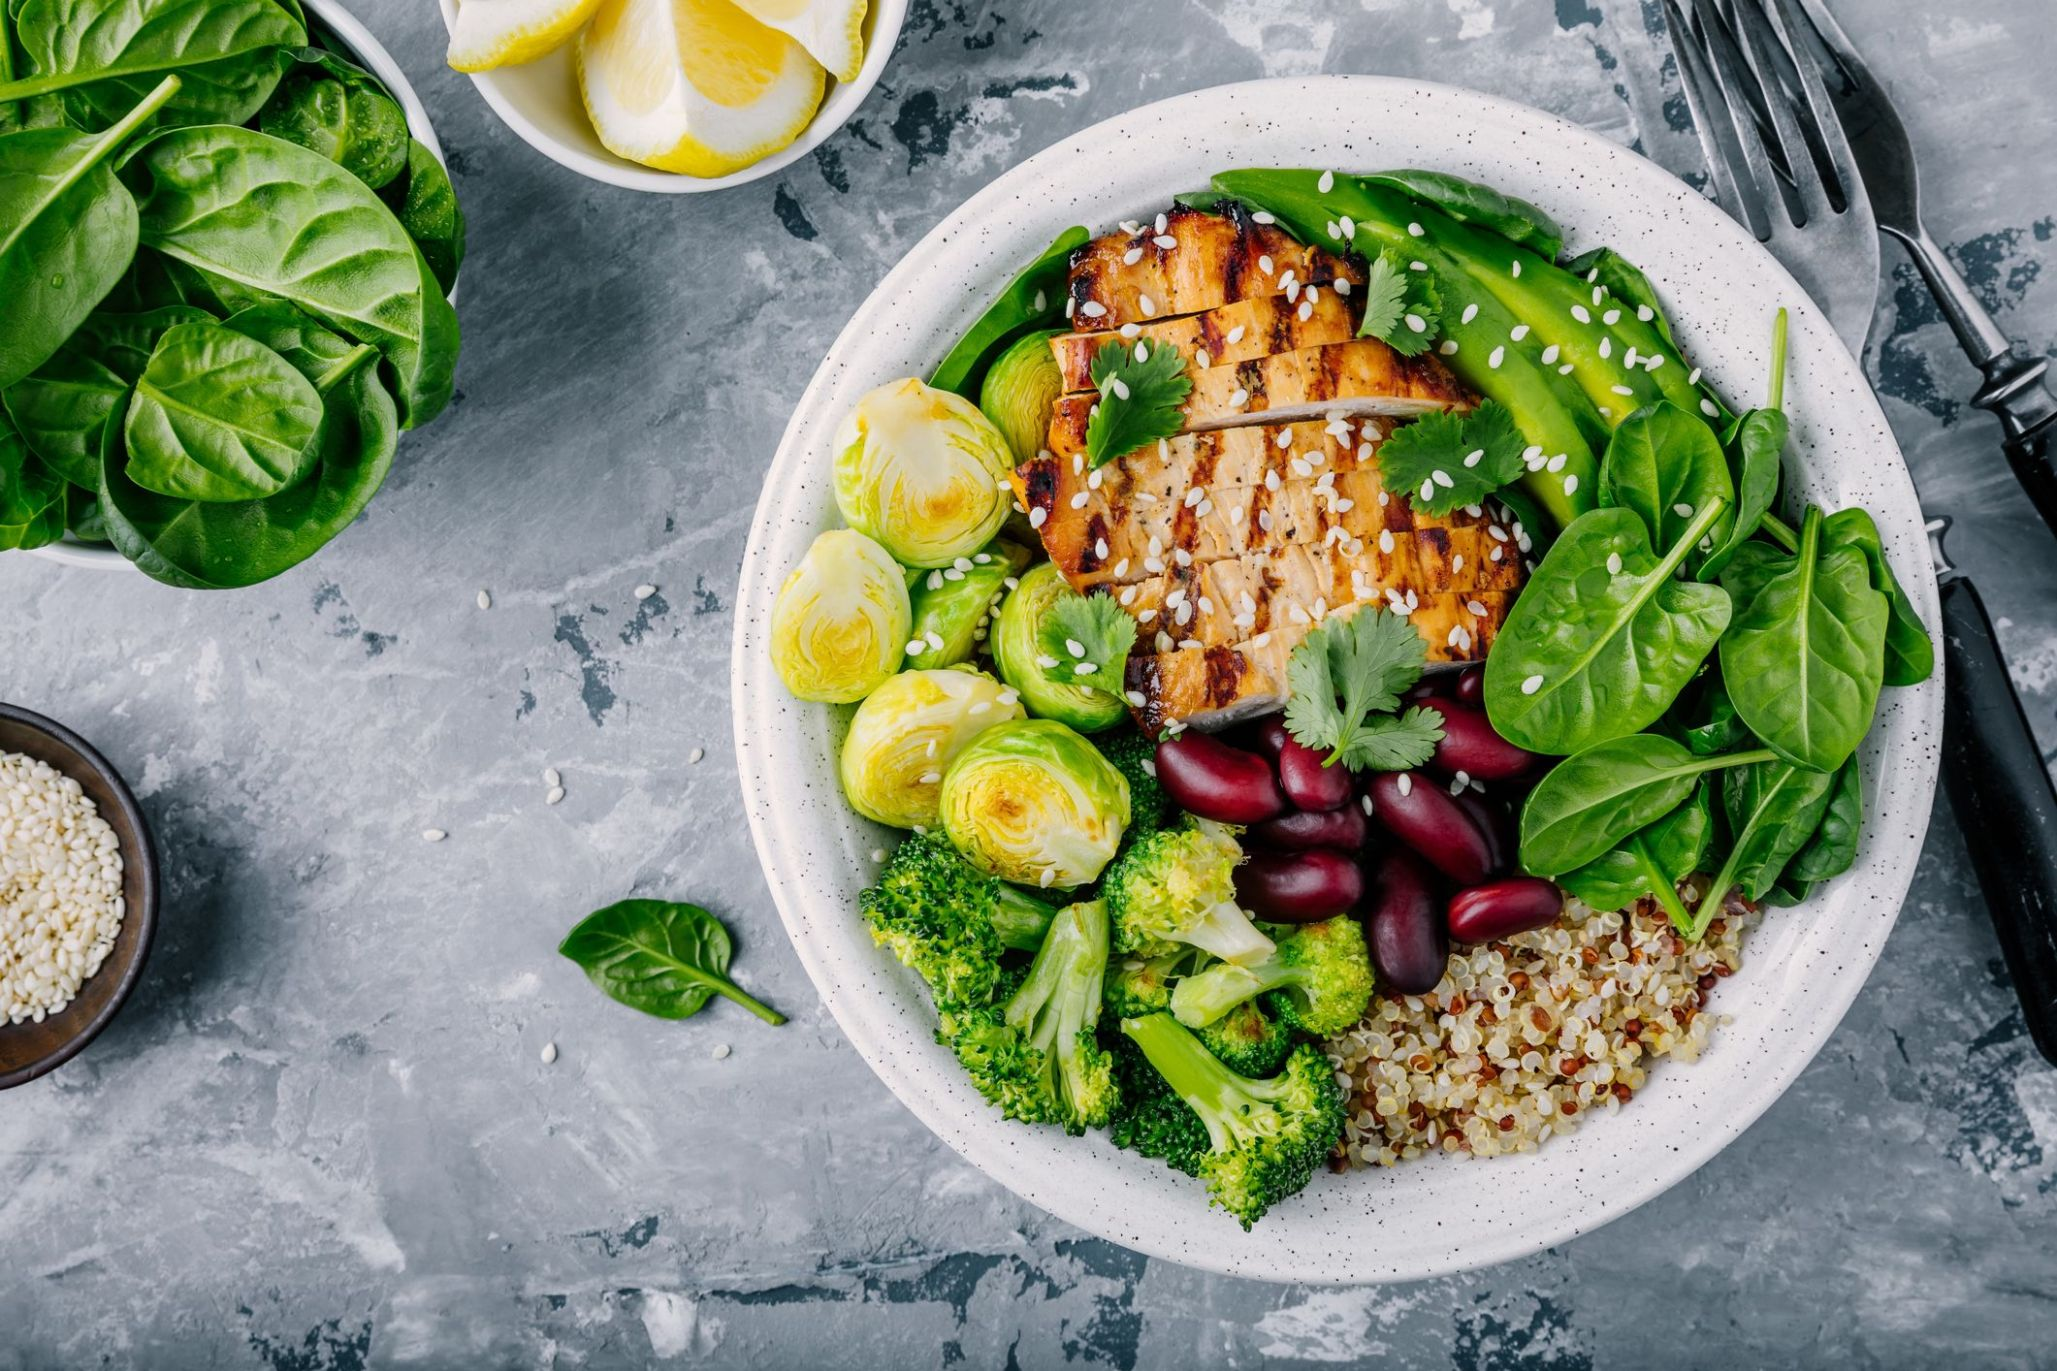 10 Low-Calorie, High-Protein Salads That Won't Leave You Hungry